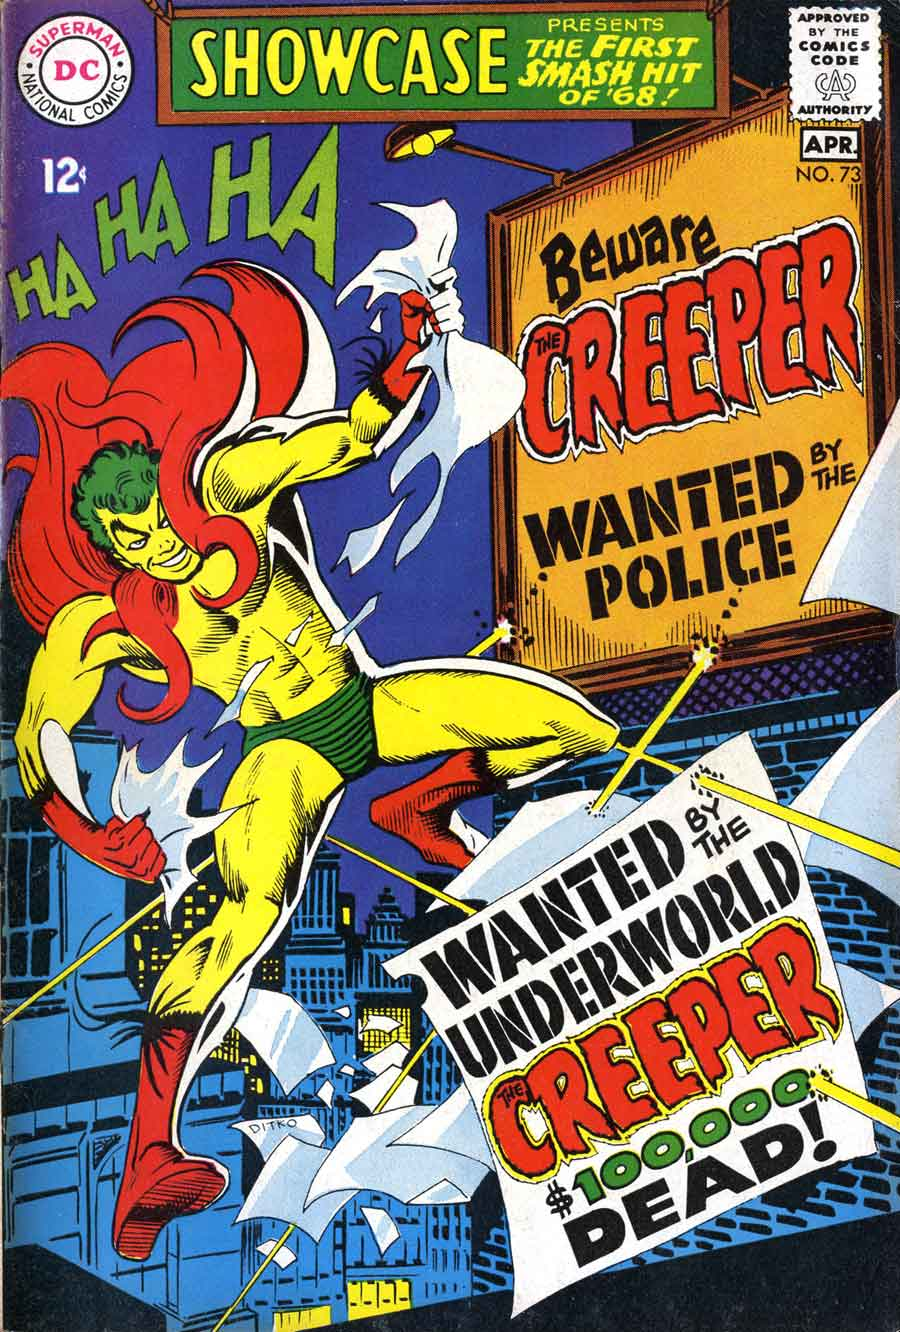 Showcase v1 #73 Beware The Creeper dc comic book cover art by Steve Ditko